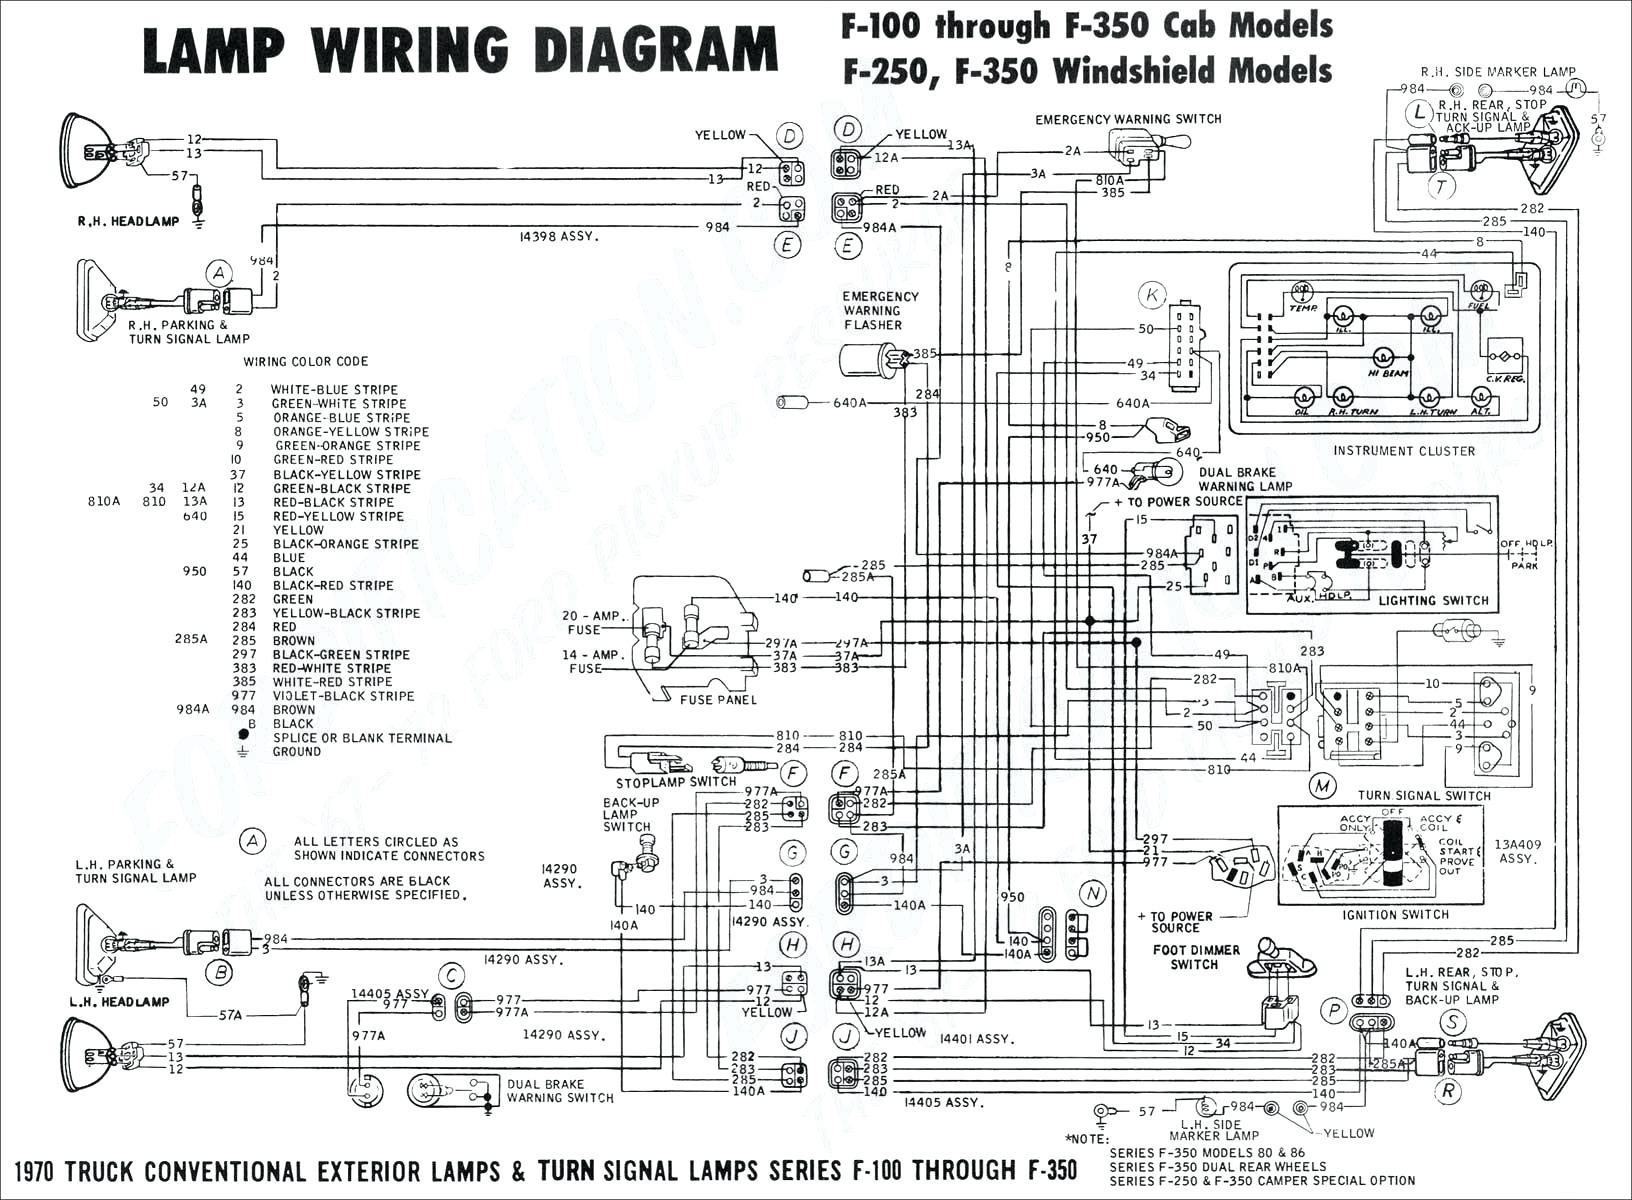 Ford F250 Tail Light Wiring Colors Pool Light Wiring Diagram Of Ford F250 Tail Light Wiring Colors